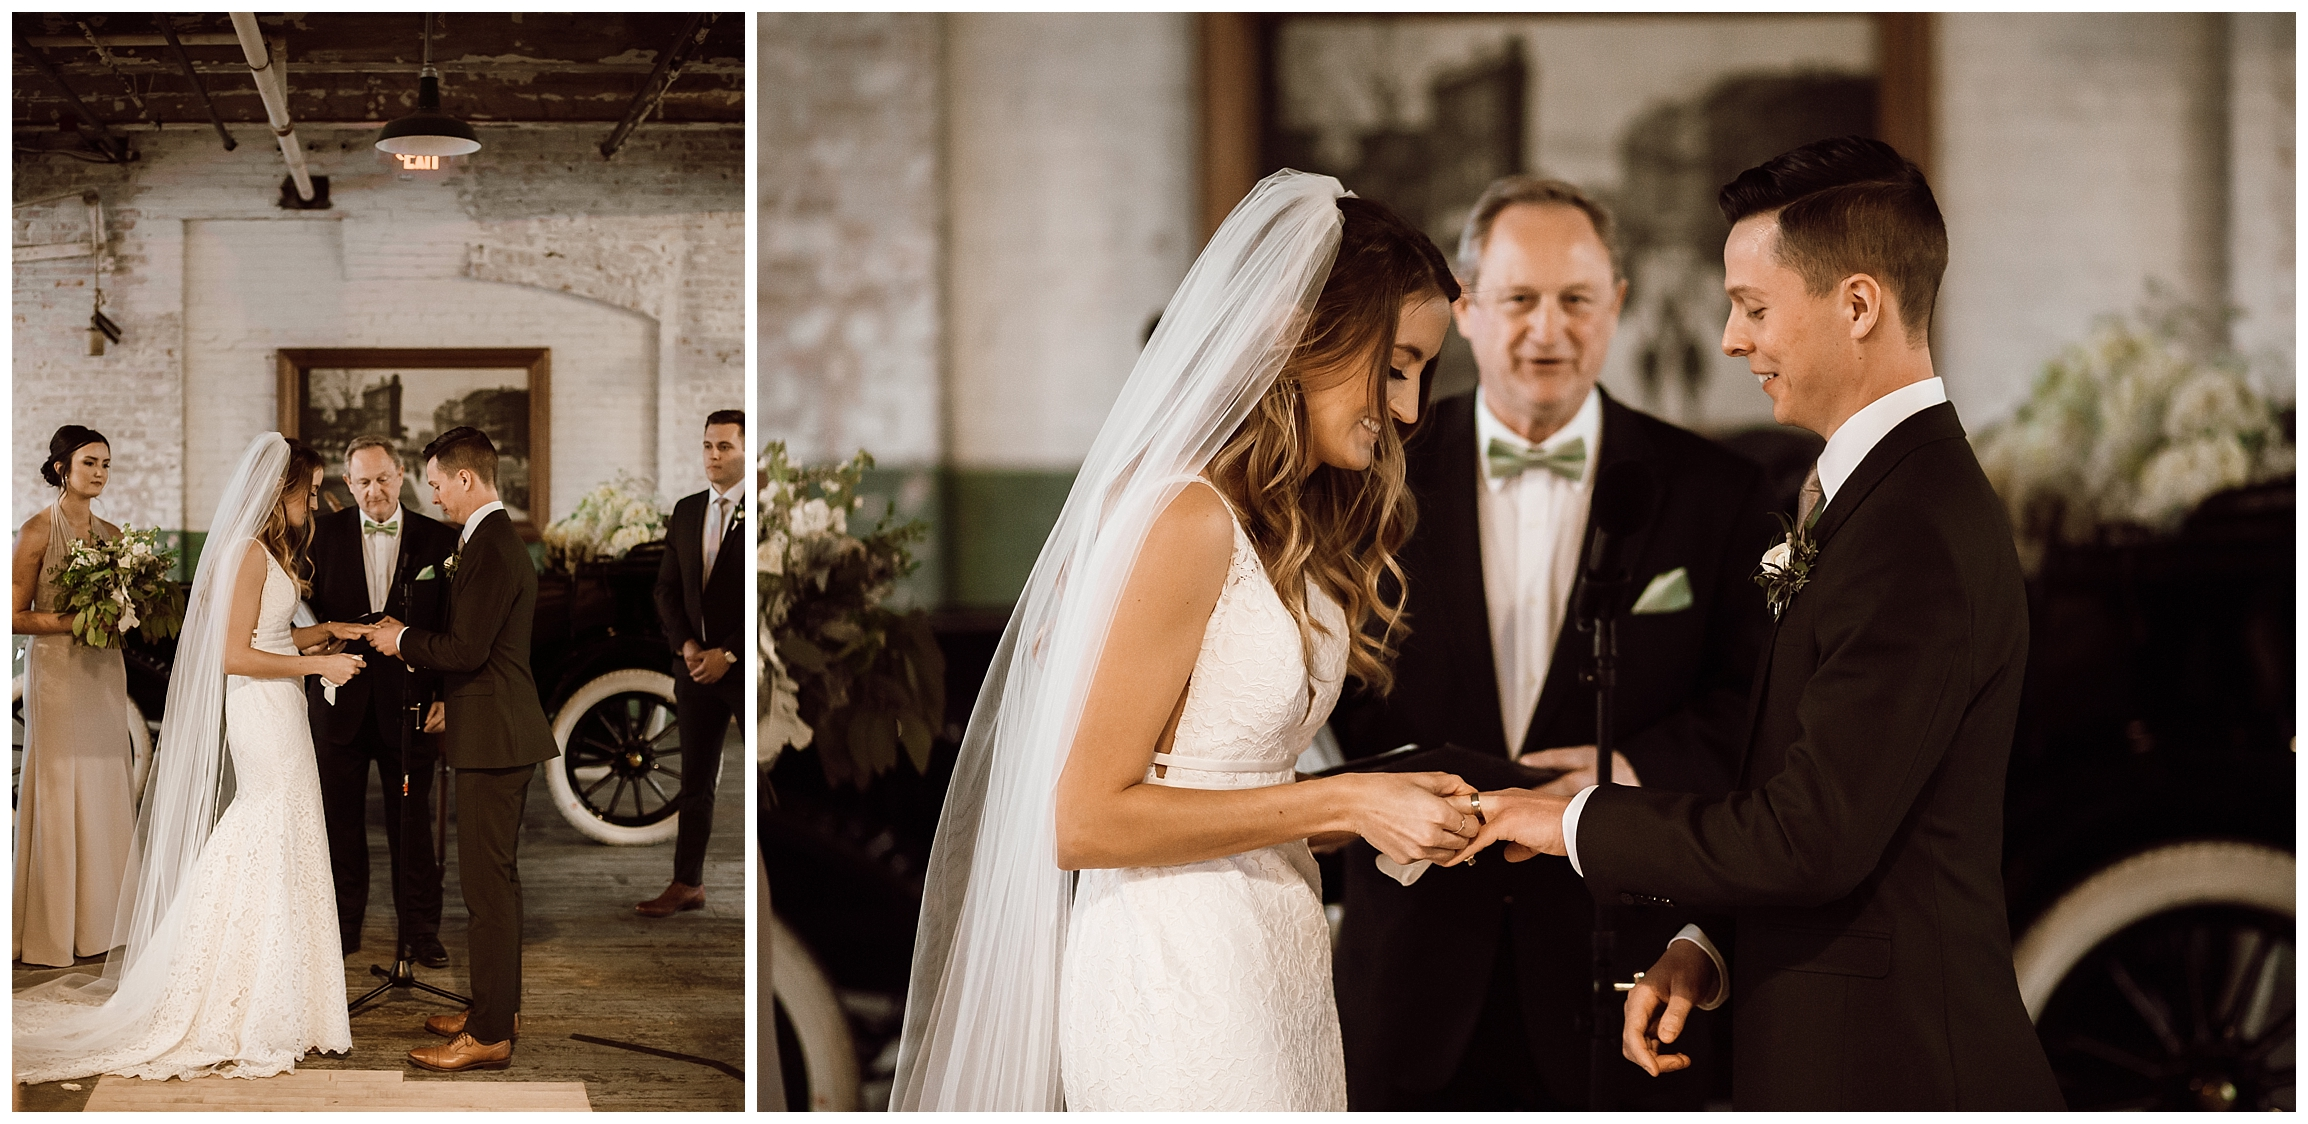 Katie_Vonasek_Photography_Ford_Piquette_Plant_Wedding_Detroit73.JPG